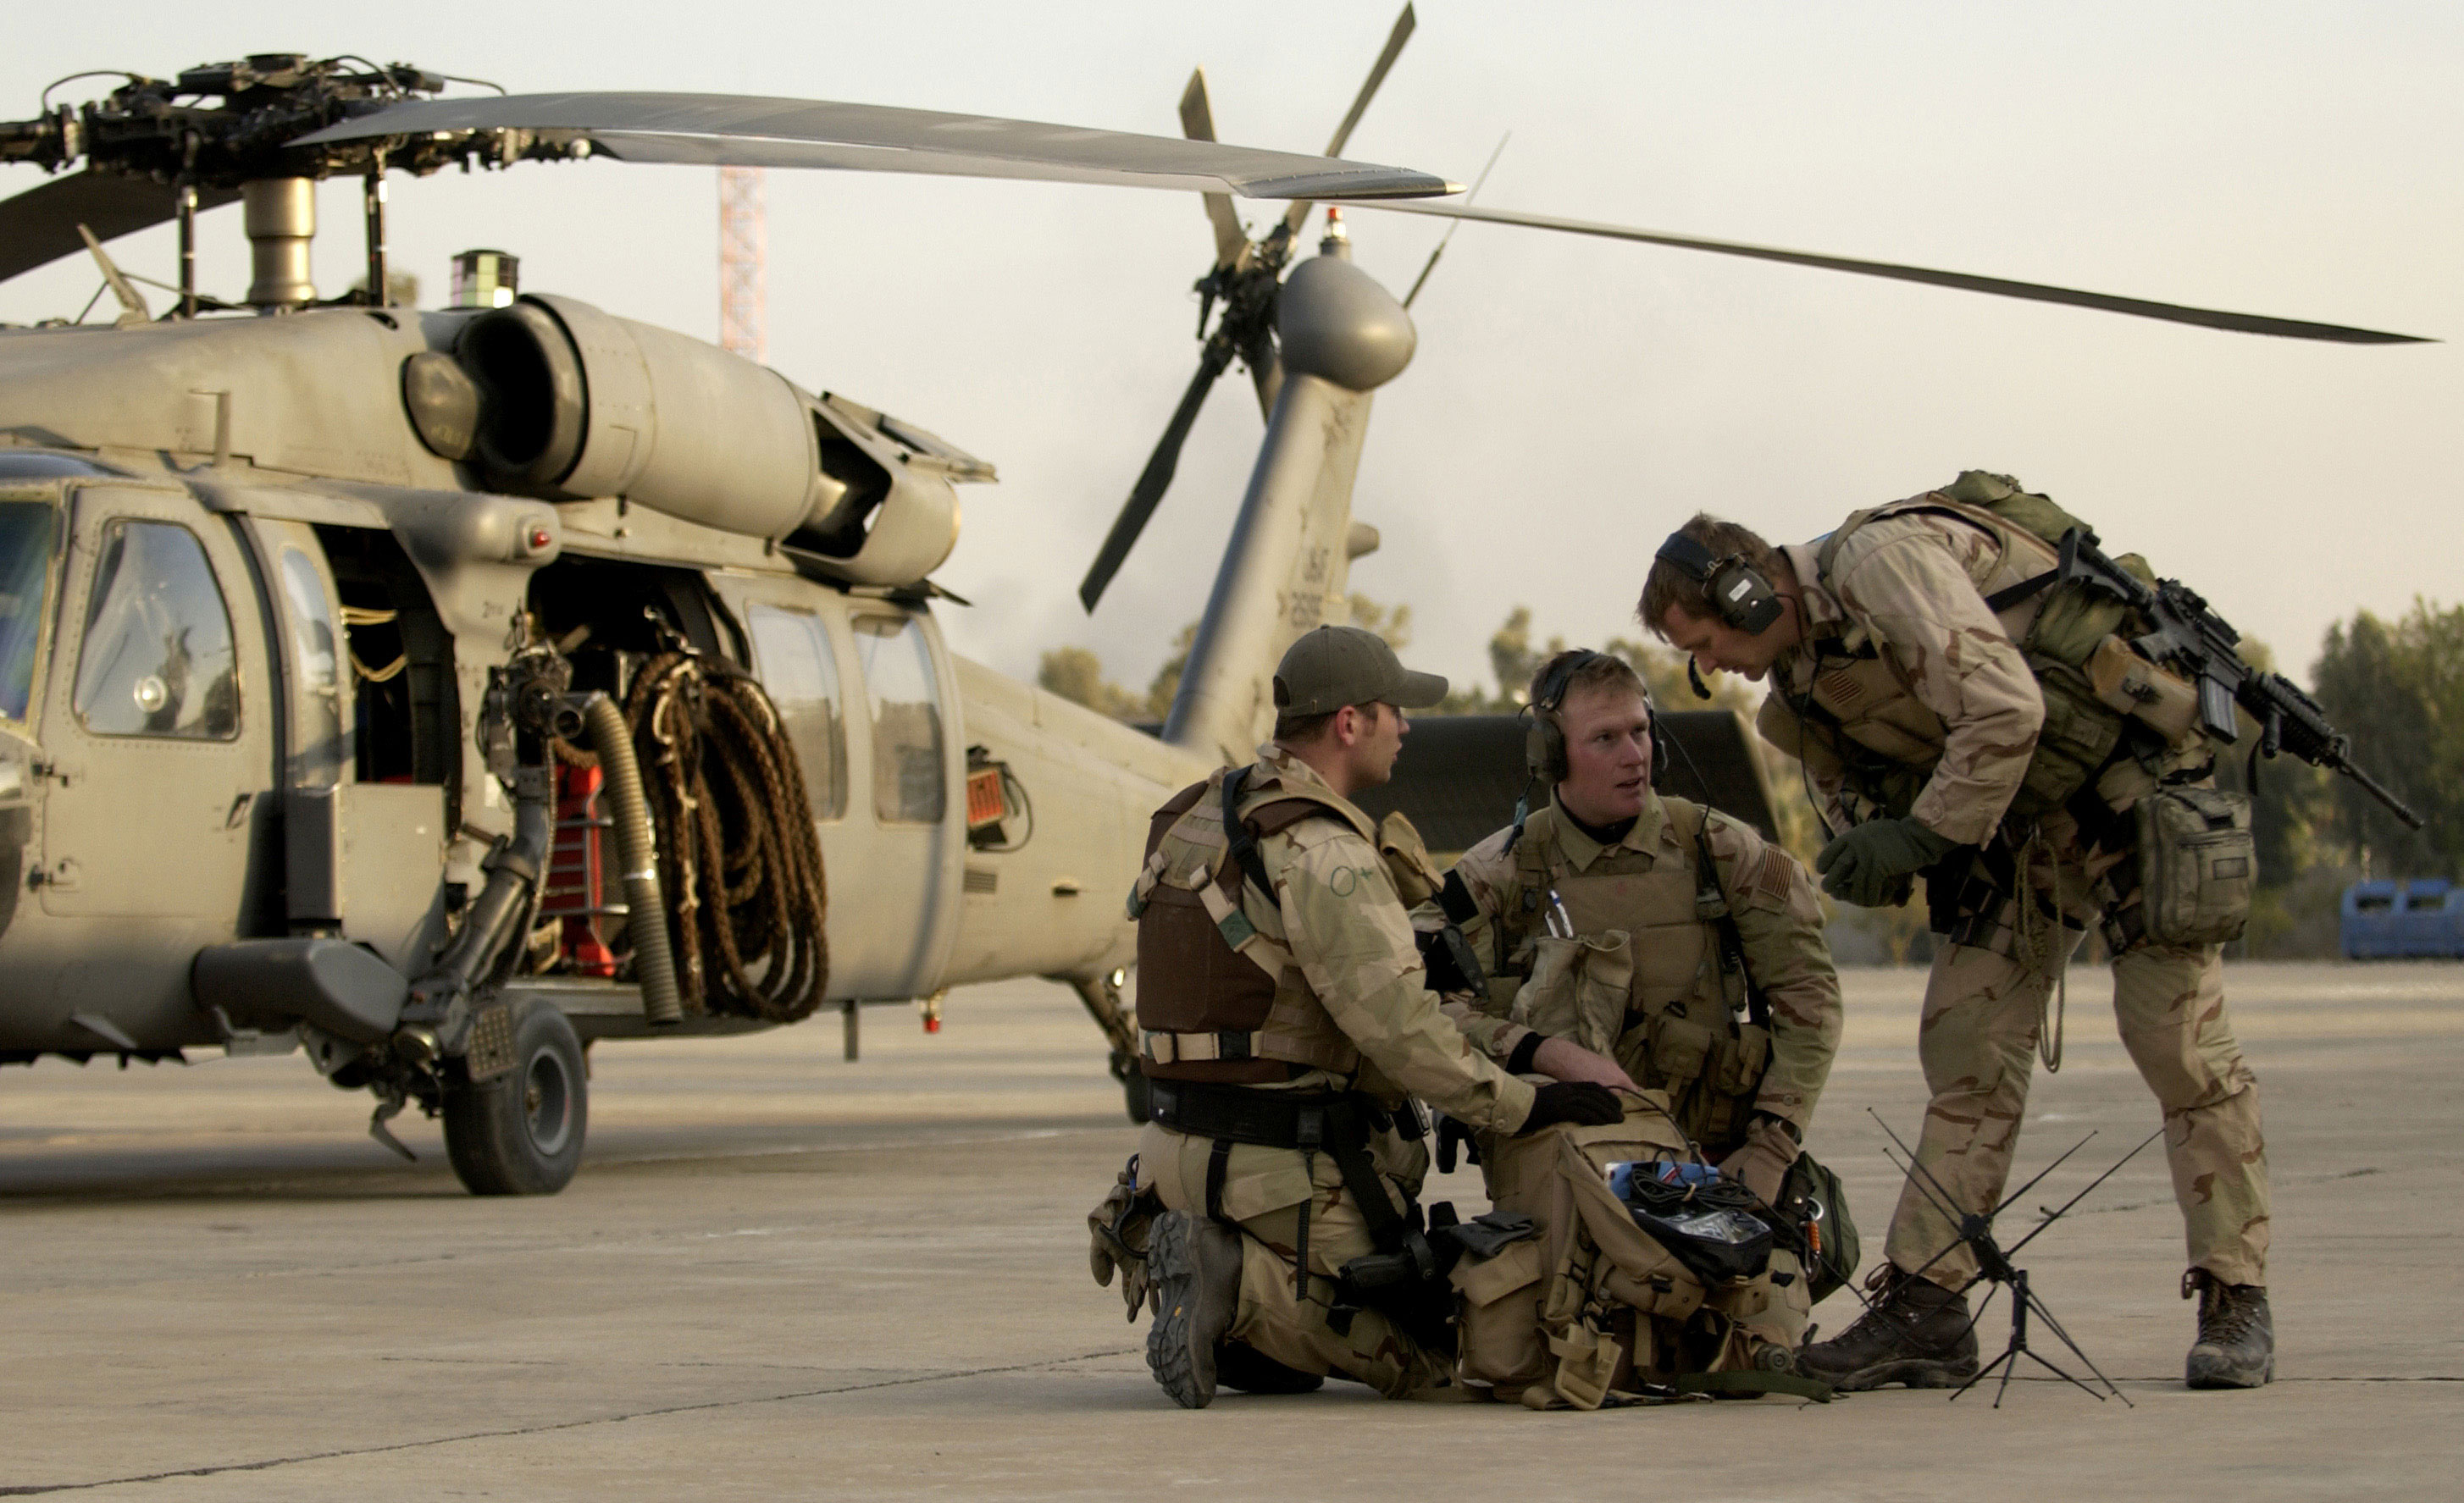 pj helicopters with Pararescuemen on PhotoEssaySS in addition Pararescuemen moreover Kight Petrified Palm Wood besides Large Rc Huey Helicopter O6oSABkDKjEqXQWL817ef5ci5pJ8uc5 7CE6vtEwduS8I besides File 720th Special Tactics Group airmen jump 20071003.